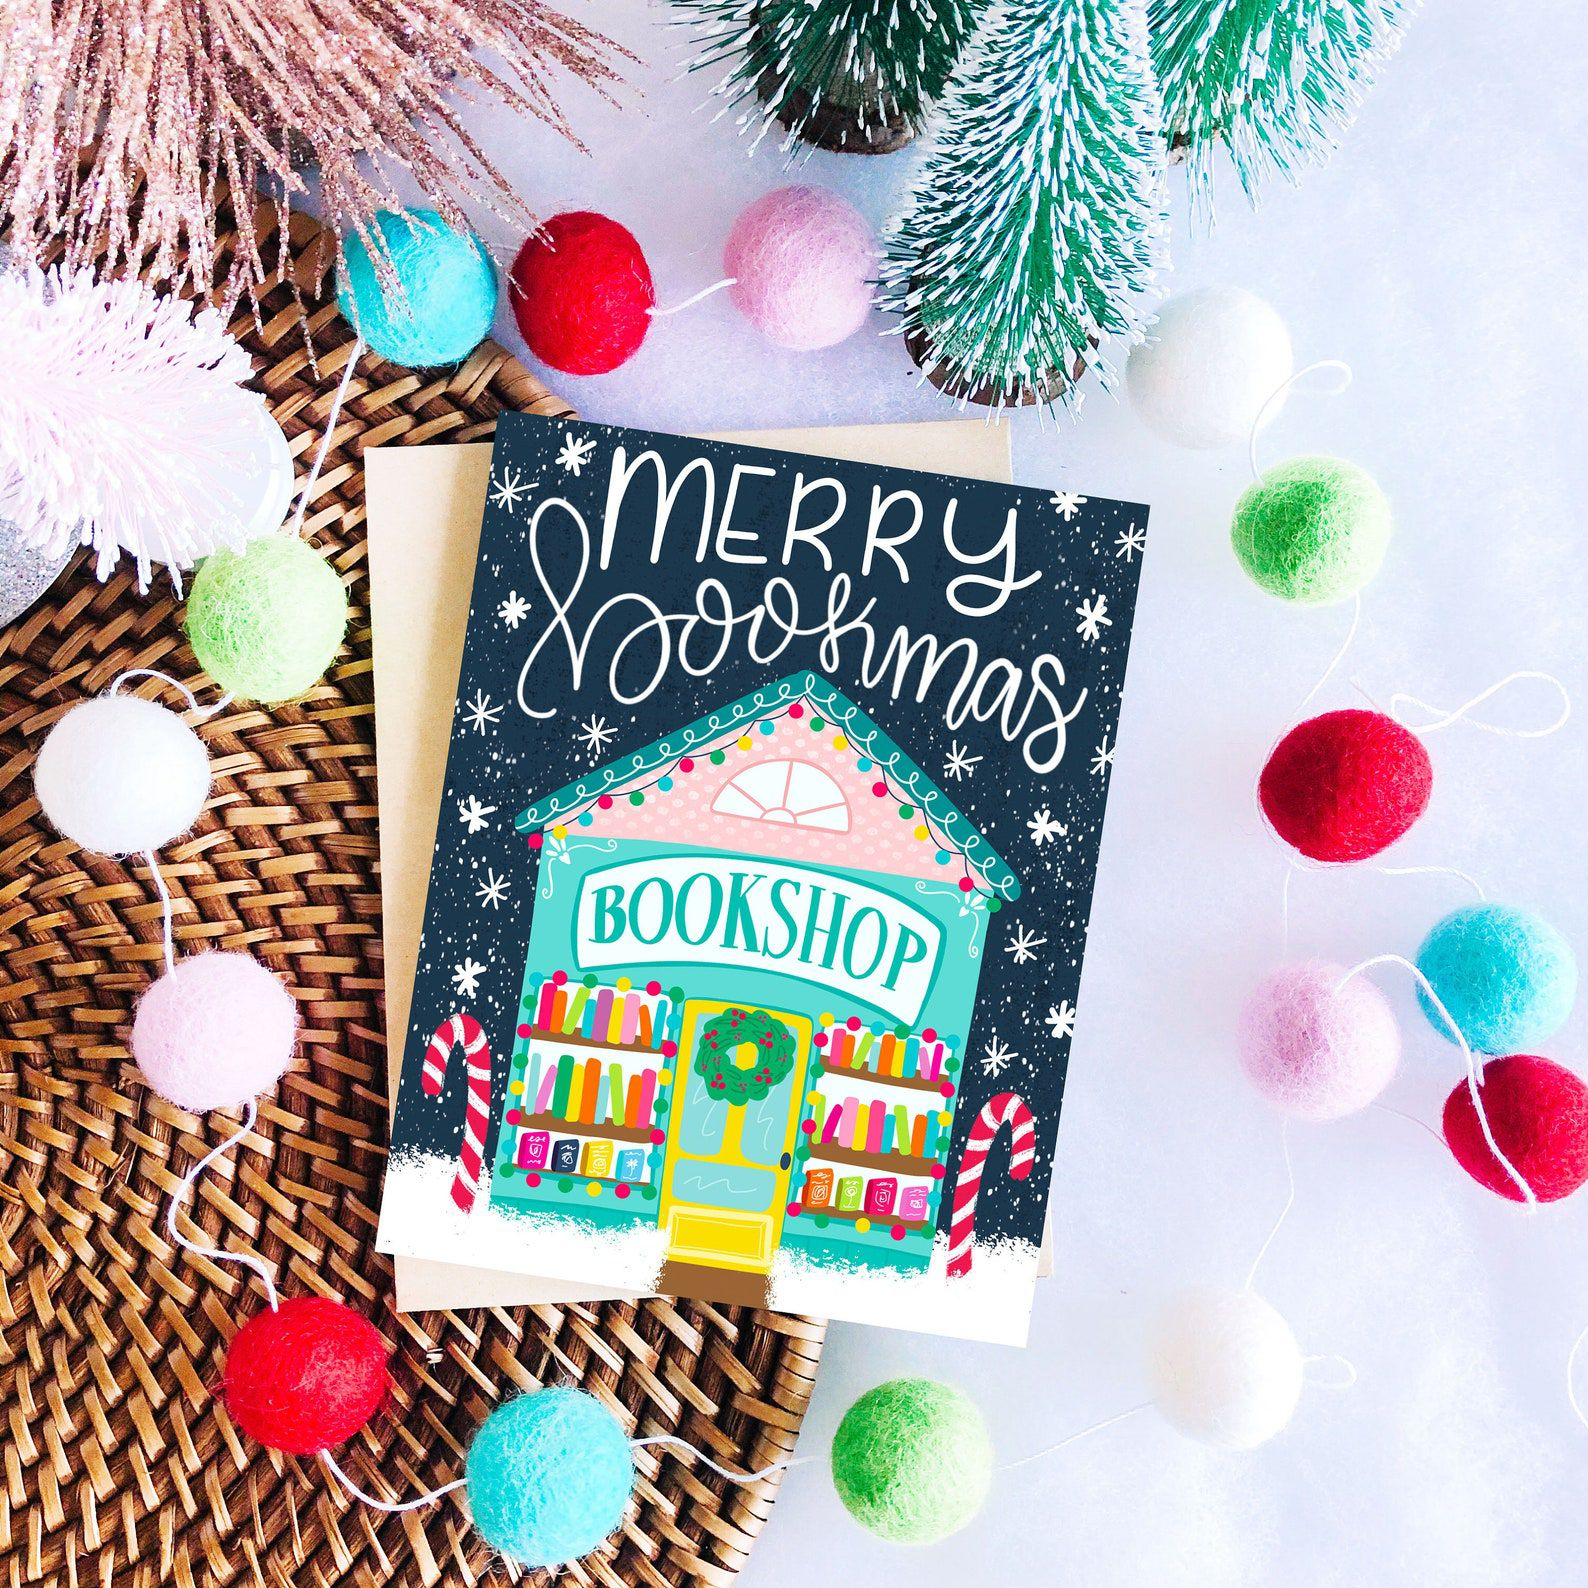 """A dark blue card that reads """"Merry Bookmas"""" and depicts a teal bookshop with colorful books pines and pink, red, and green accents."""